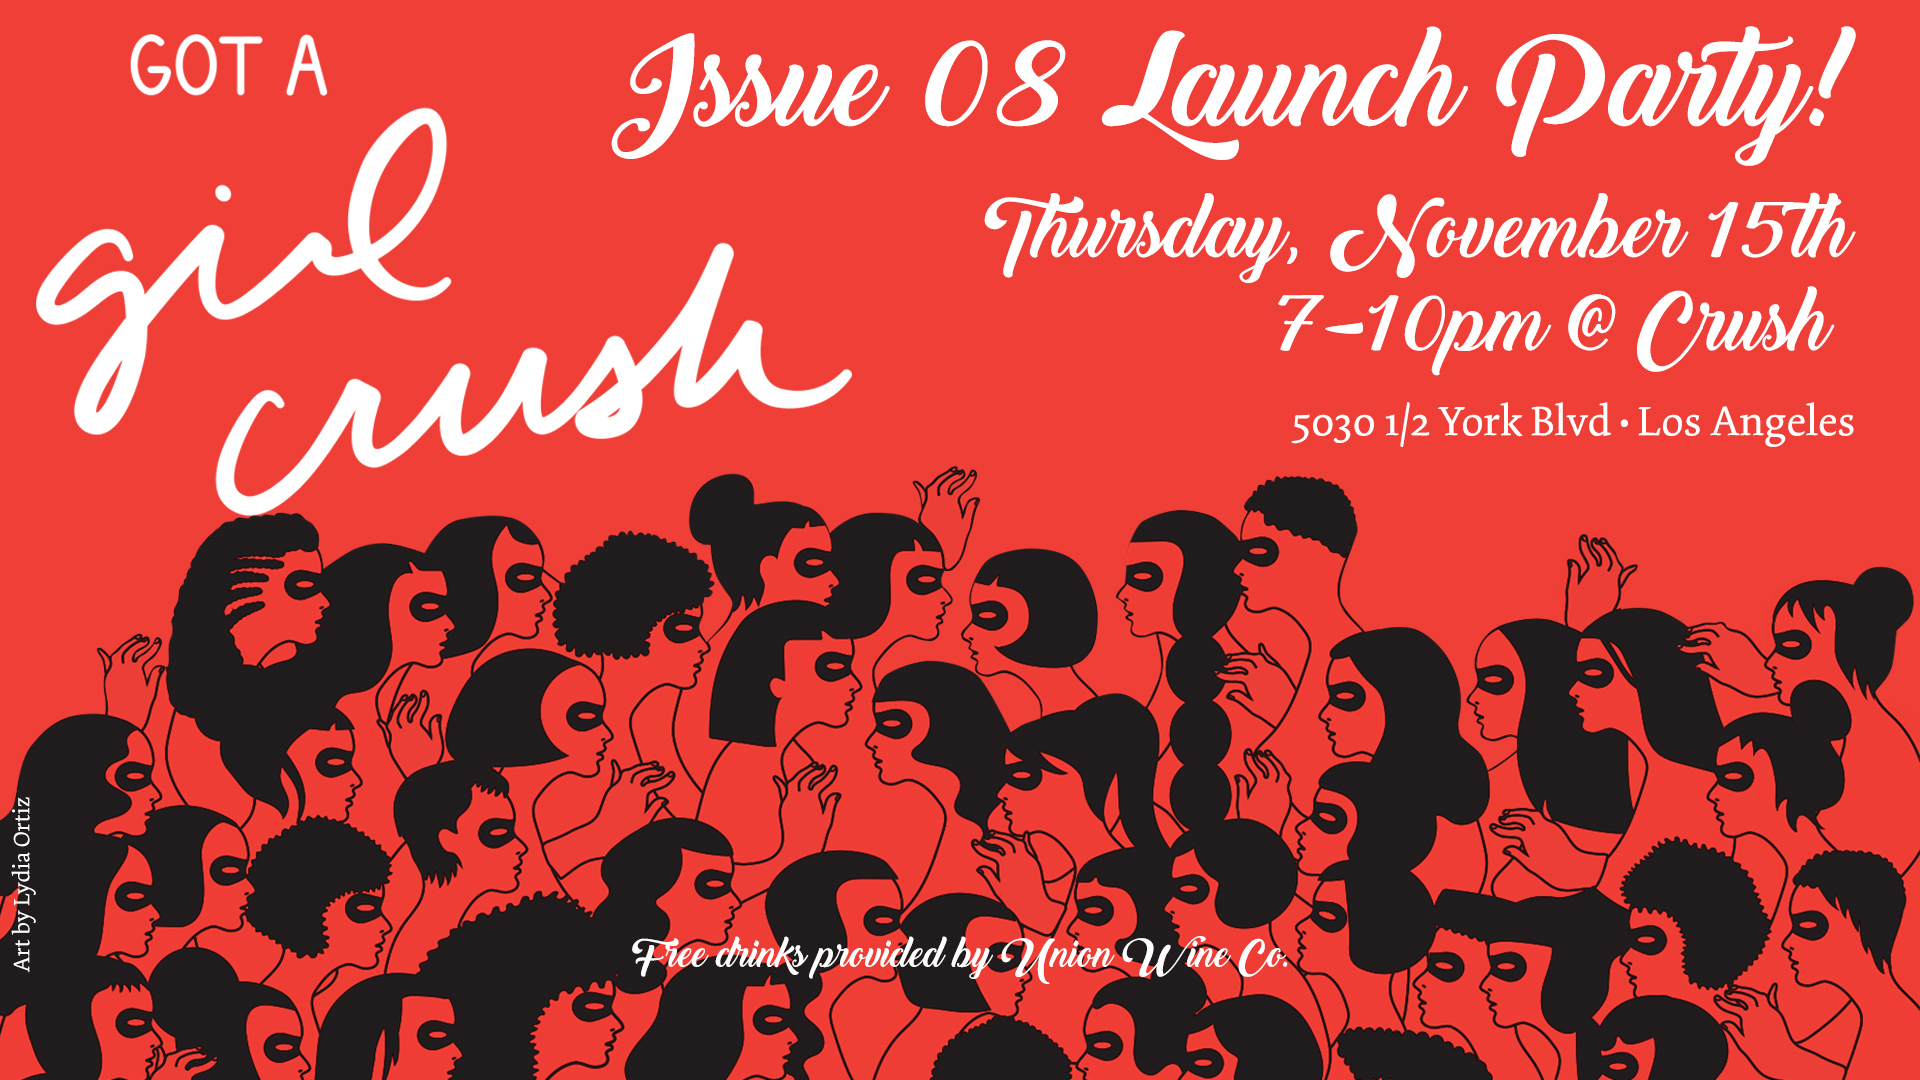 Issue08Launch.jpg